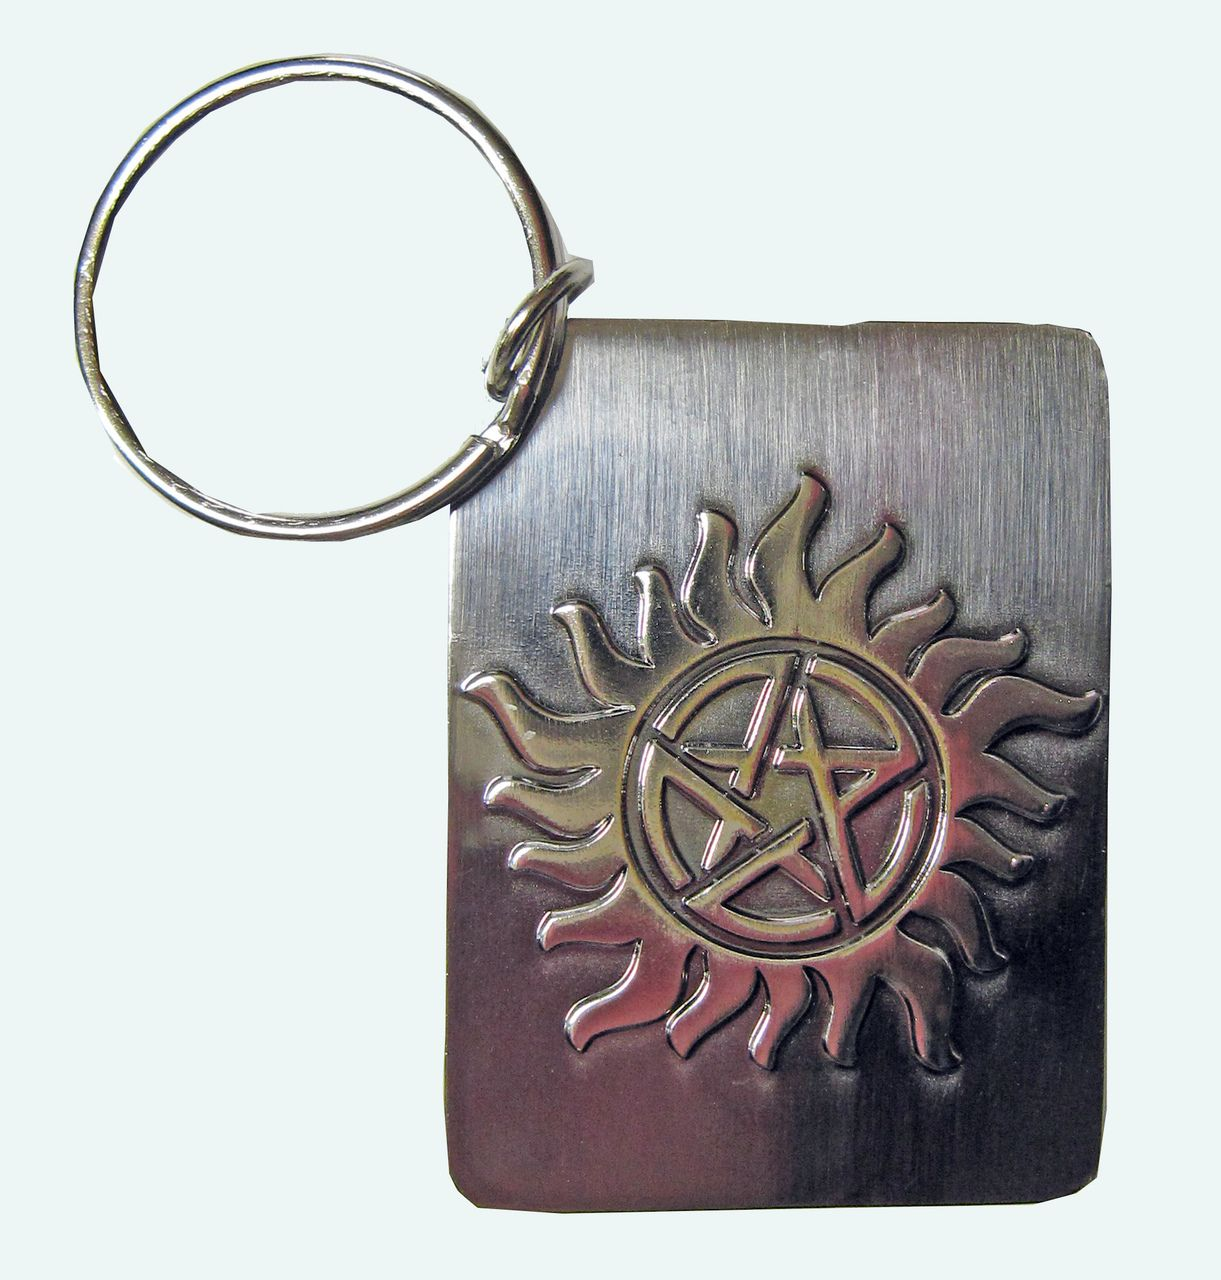 SUPERNATURAL ANTIPOSSESSION TATTOO SYMBOL KEYCHAIN